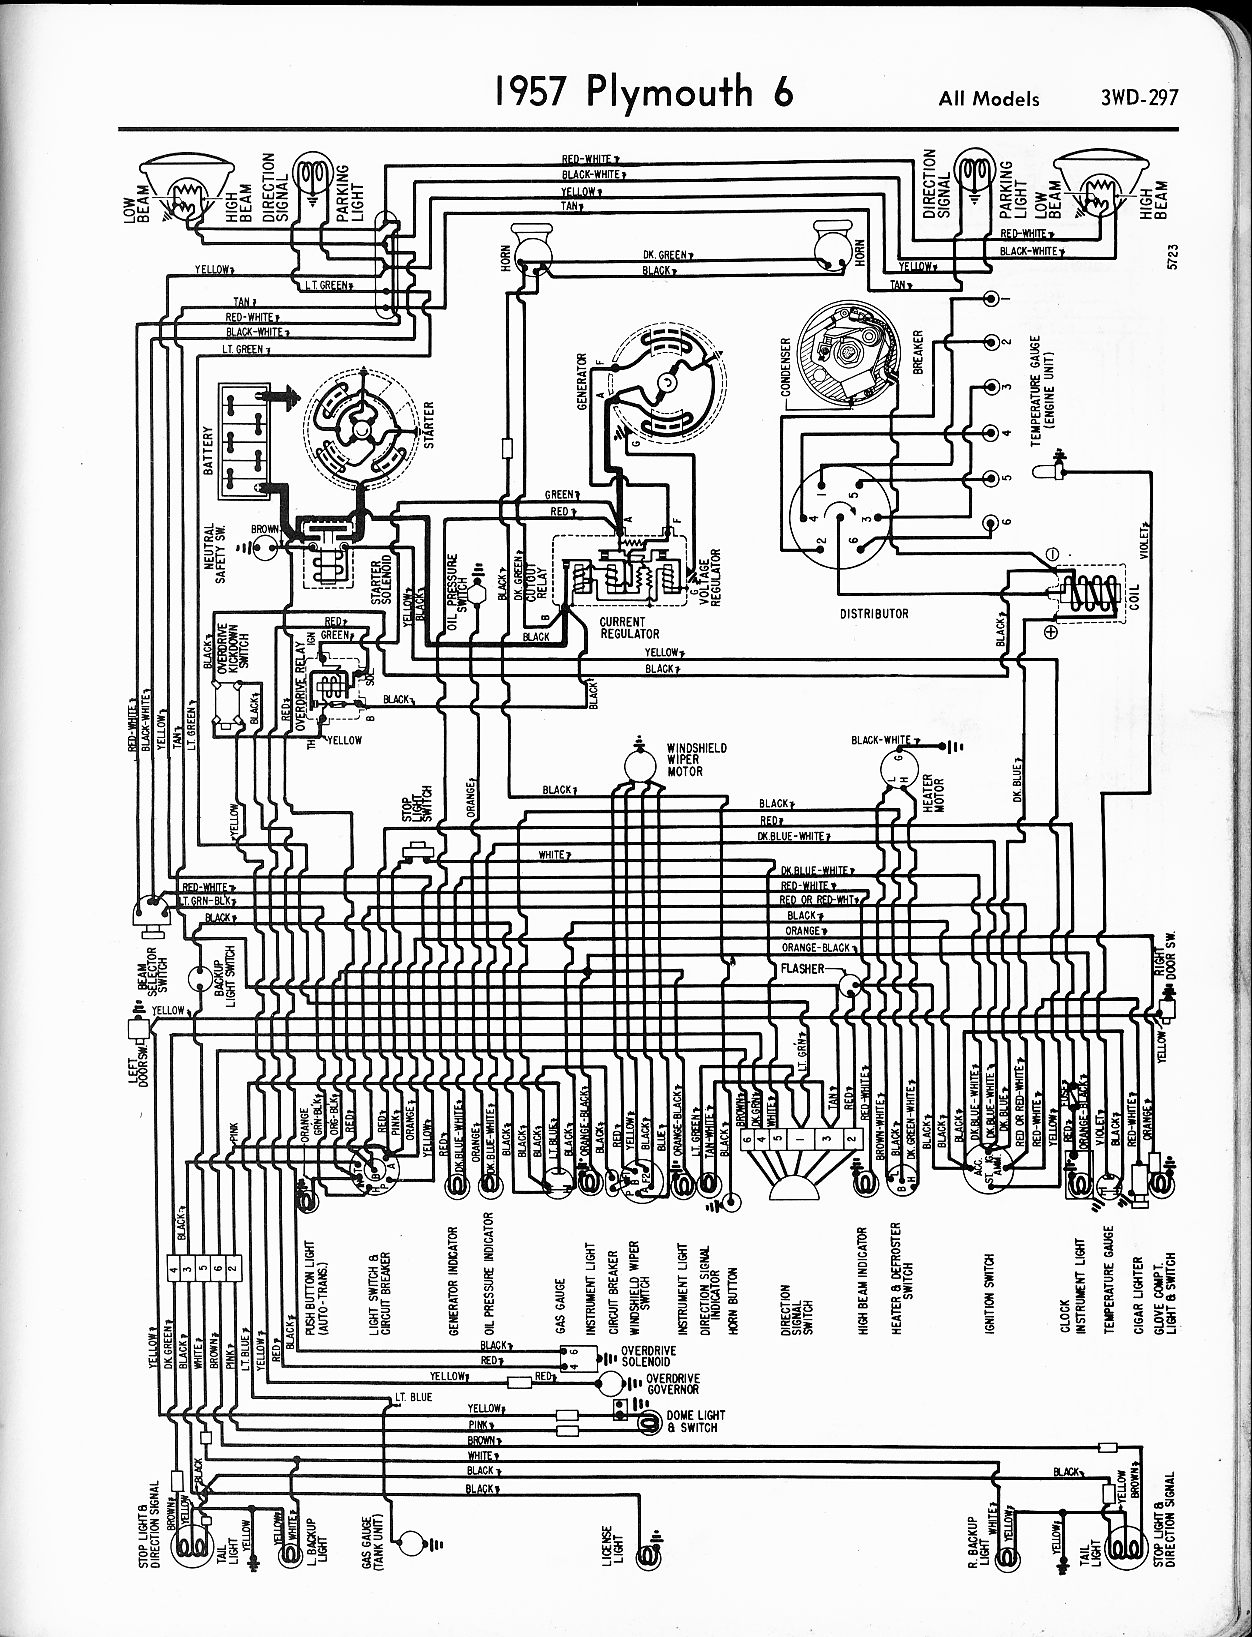 Wiring Diagrams For 1966 Plymouth Library 1964 Sport Fury Diagram 1980 Volare Engine Harness Schematic Auto Chrysler 440